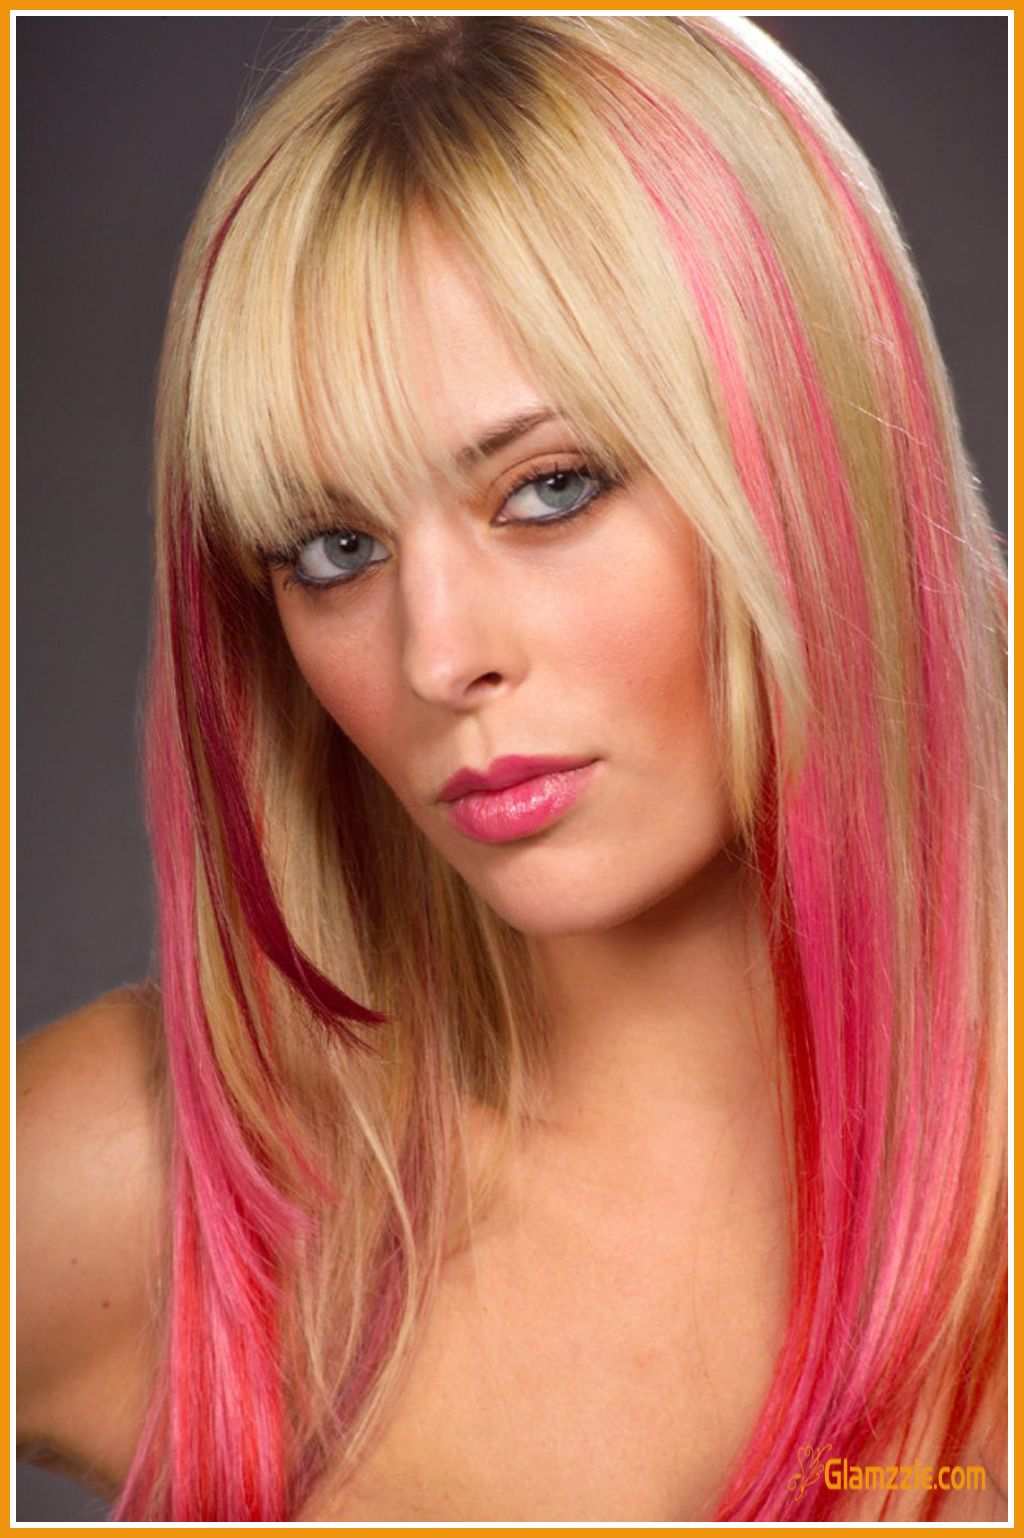 Pink Hair Streaks On Long Hair With Front Bangs Edgy Hair Color Pink Hair Extensions Edgy Hair